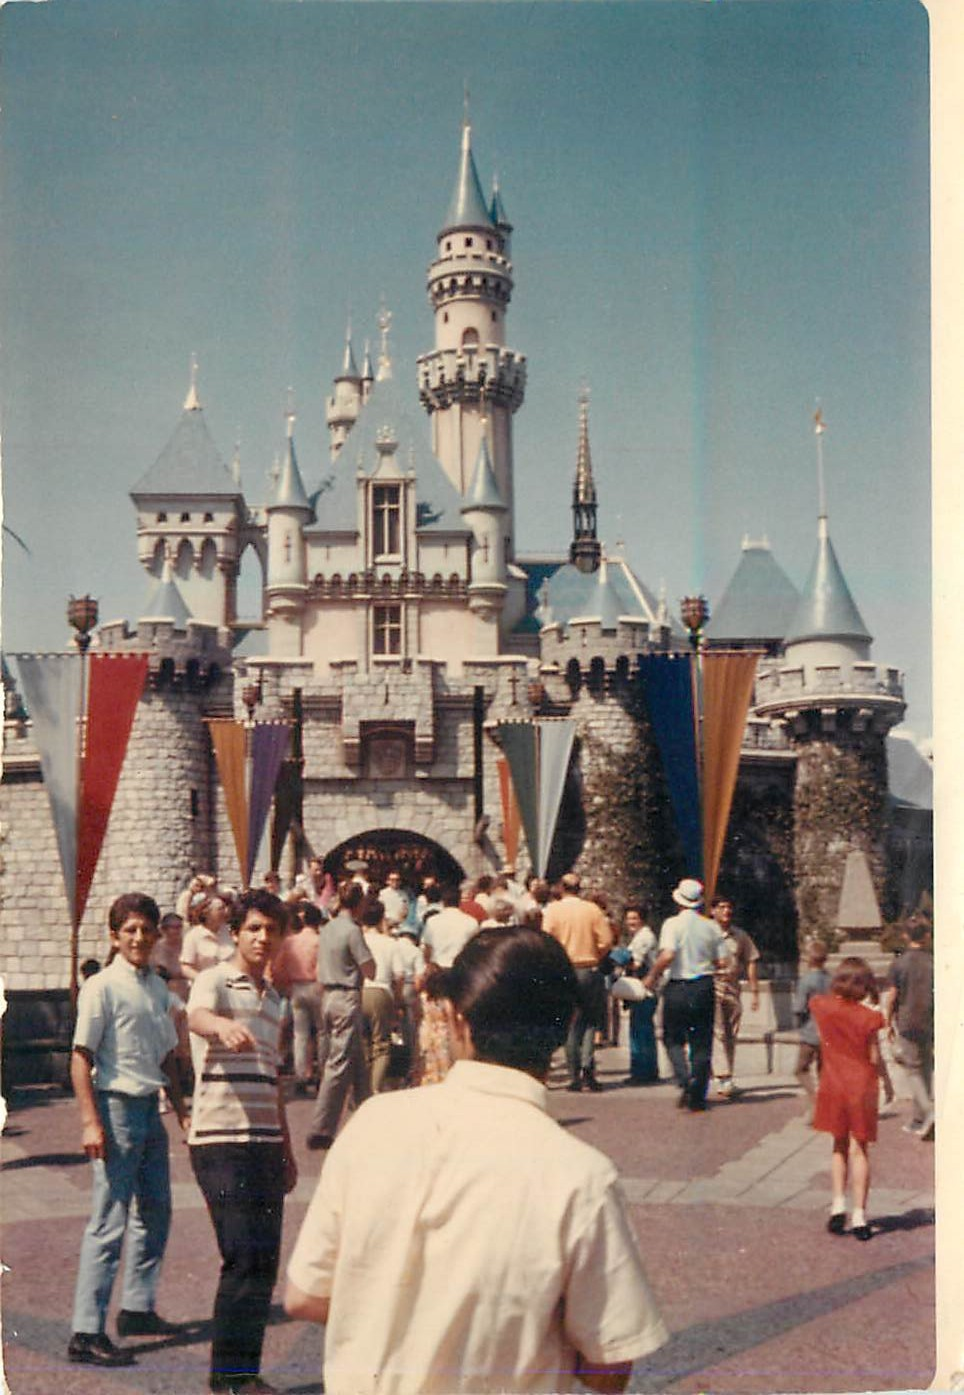 Found Disneyland Photos From 1972